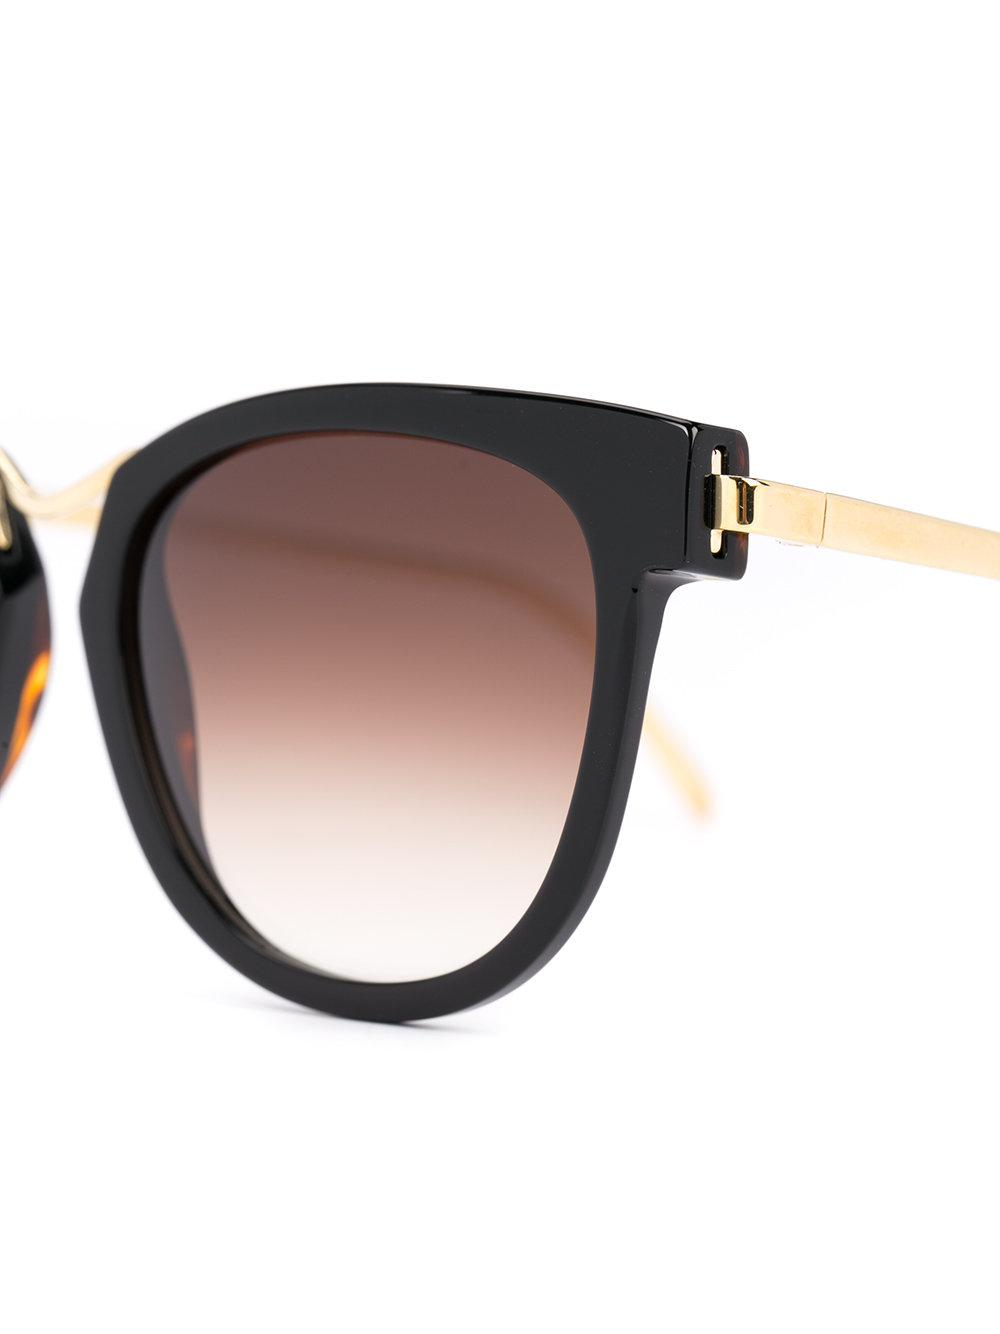 Thierry Lasry Square Frame Sunglasses in Black